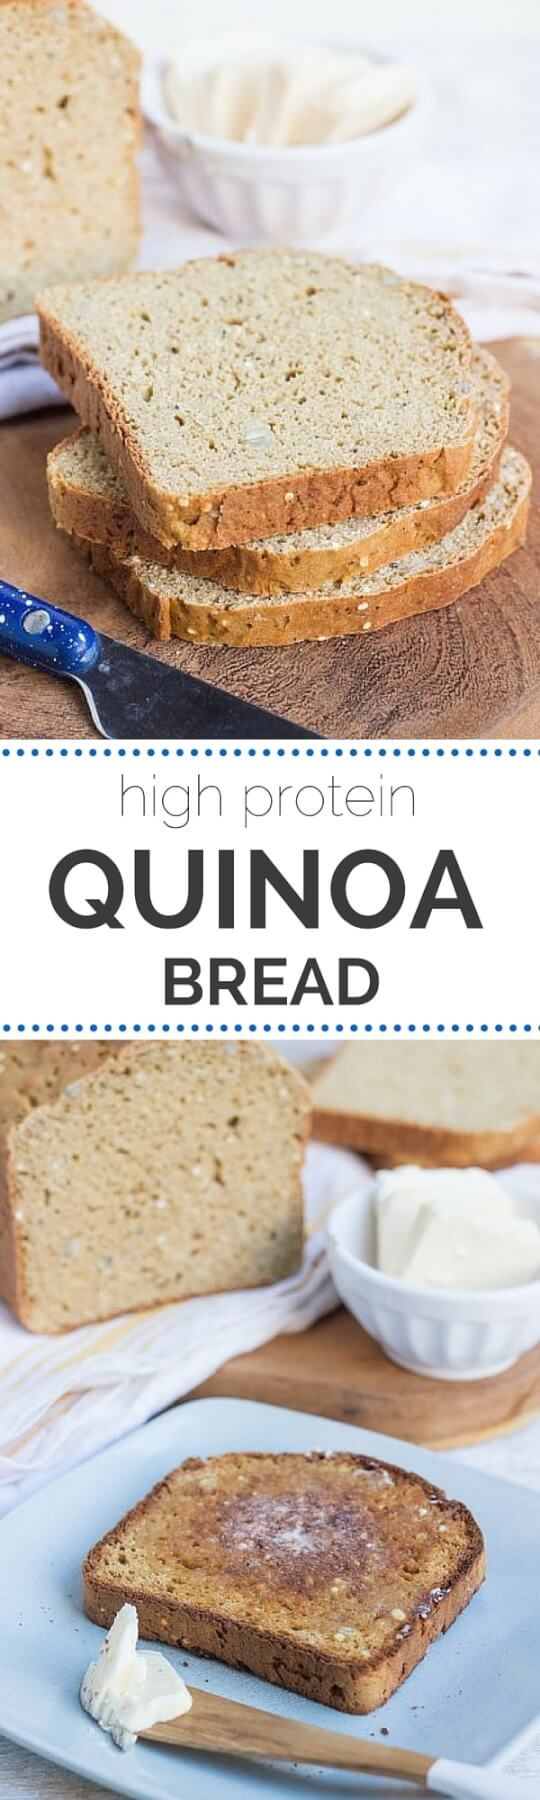 How to Make Quinoa Flour with NO Bitter Taste | Recipe ...